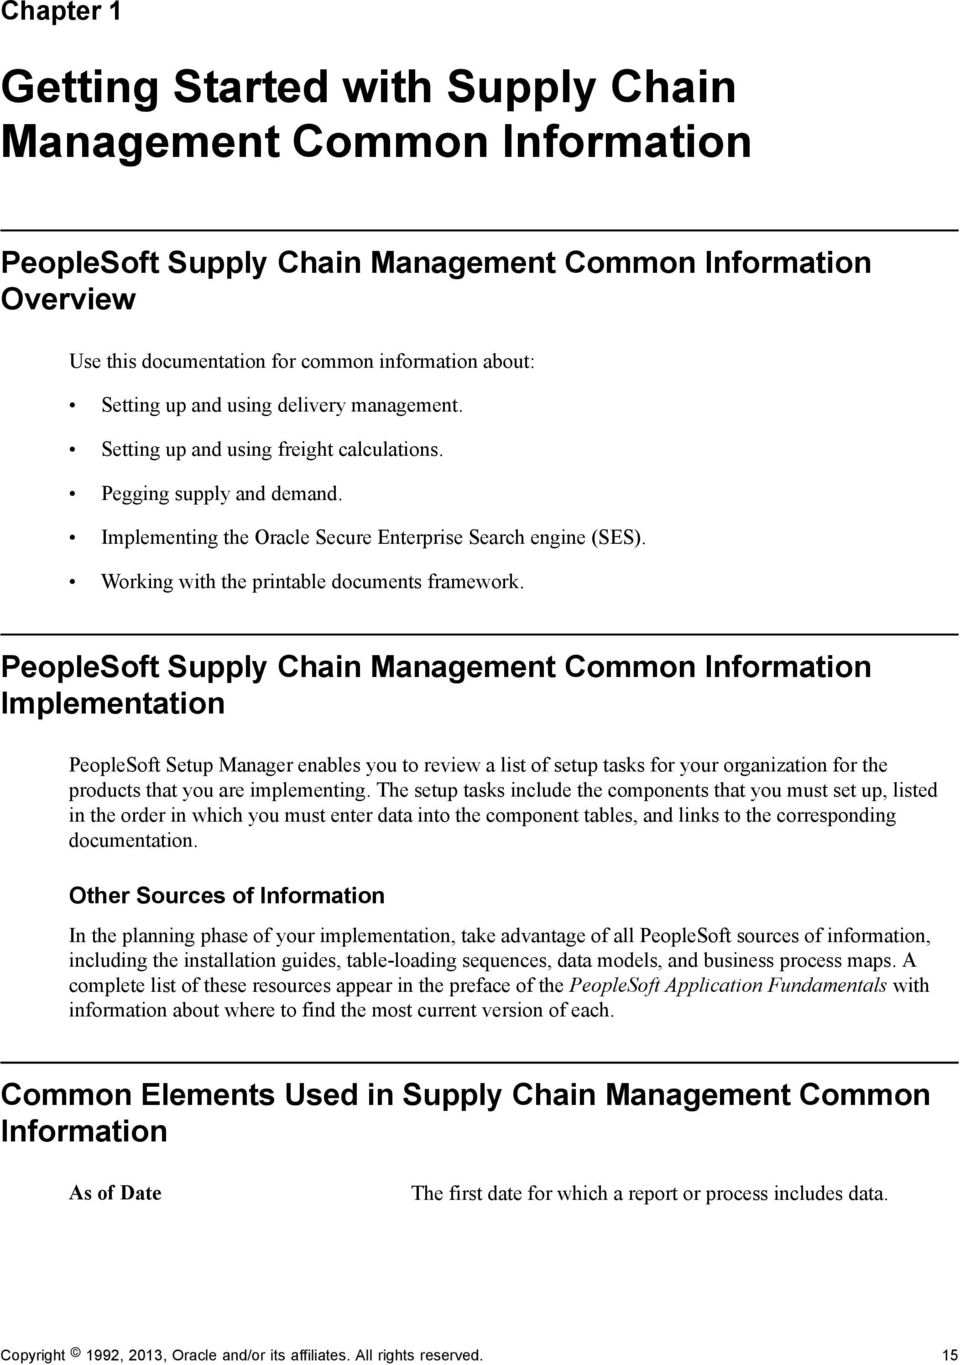 PeopleSoft FSCM 9 2: Supply Chain Management Common